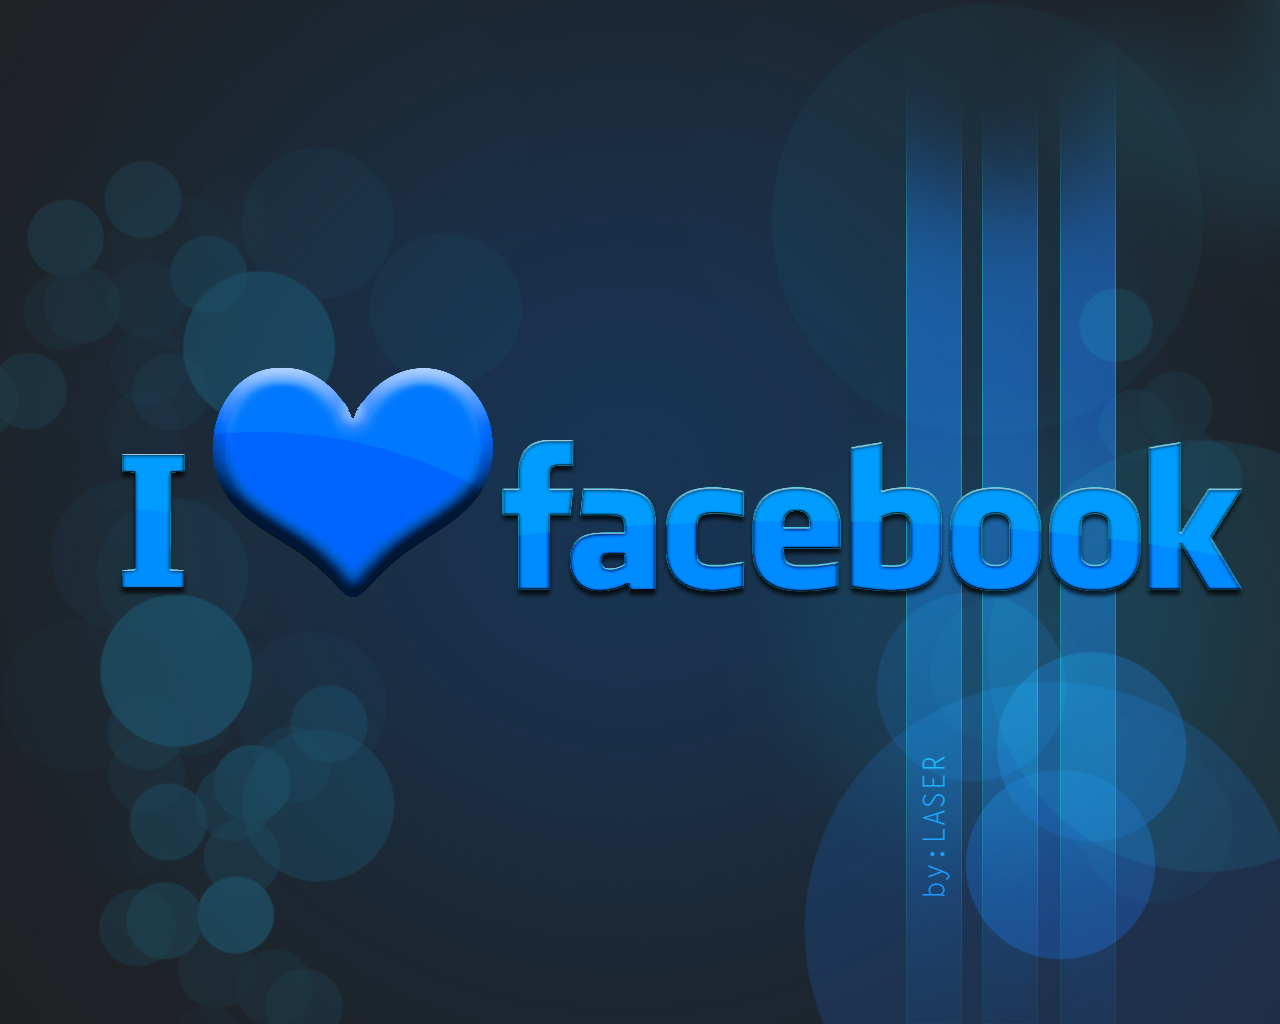 Love Wallpaper For Profile Picture : Facebook wallpaper Free HD:computer Wallpaper Free Wallpaper Downloads